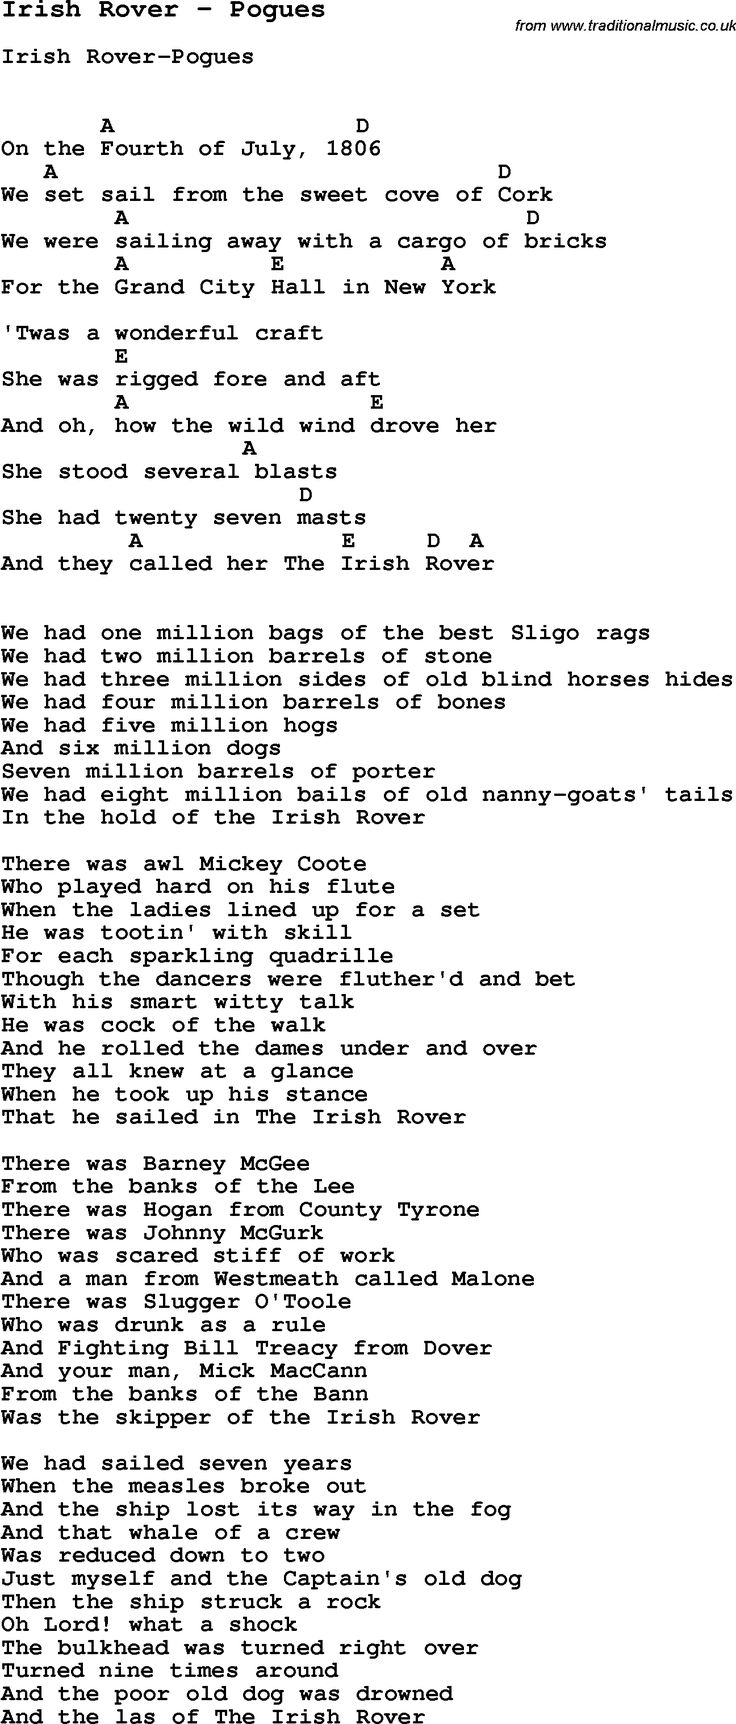 Lyrics for irish rover